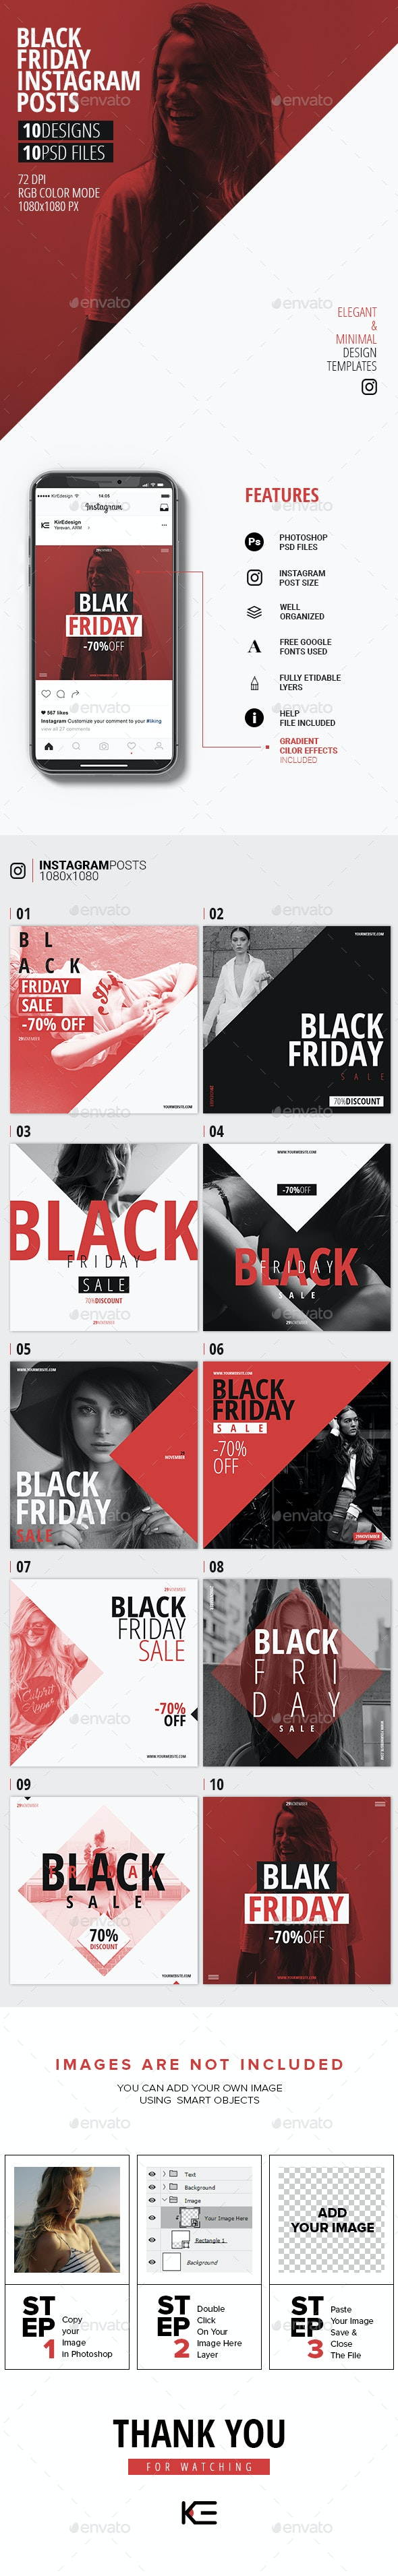 10 Black Friday Instagram Posts - Social Media Web Elements